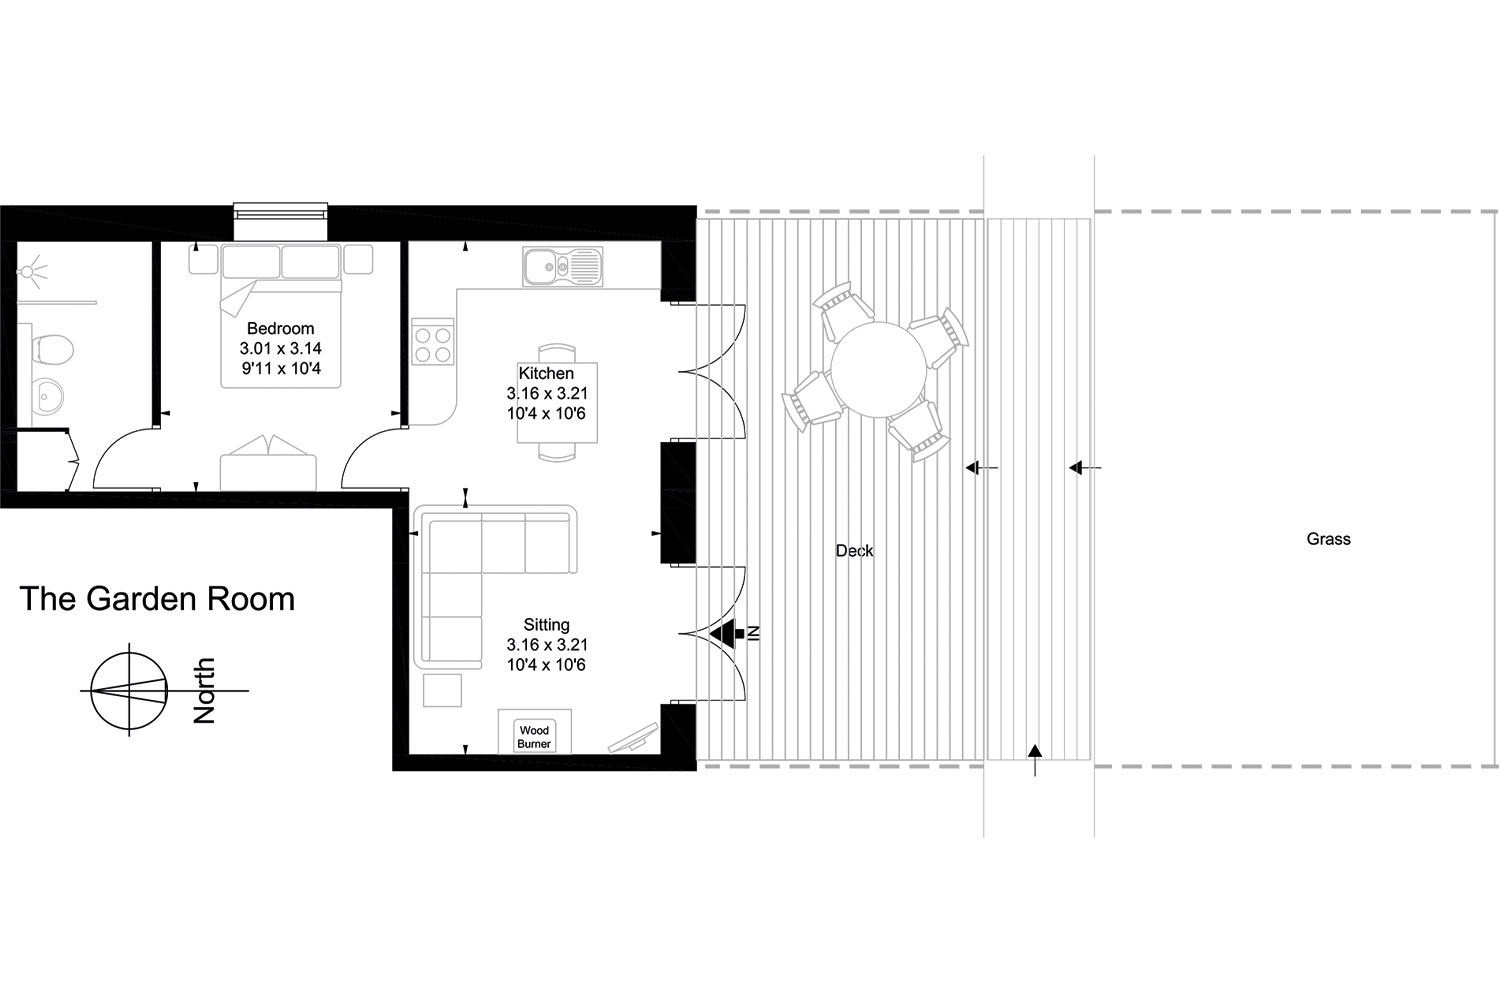 The Garden Room Floor Plan